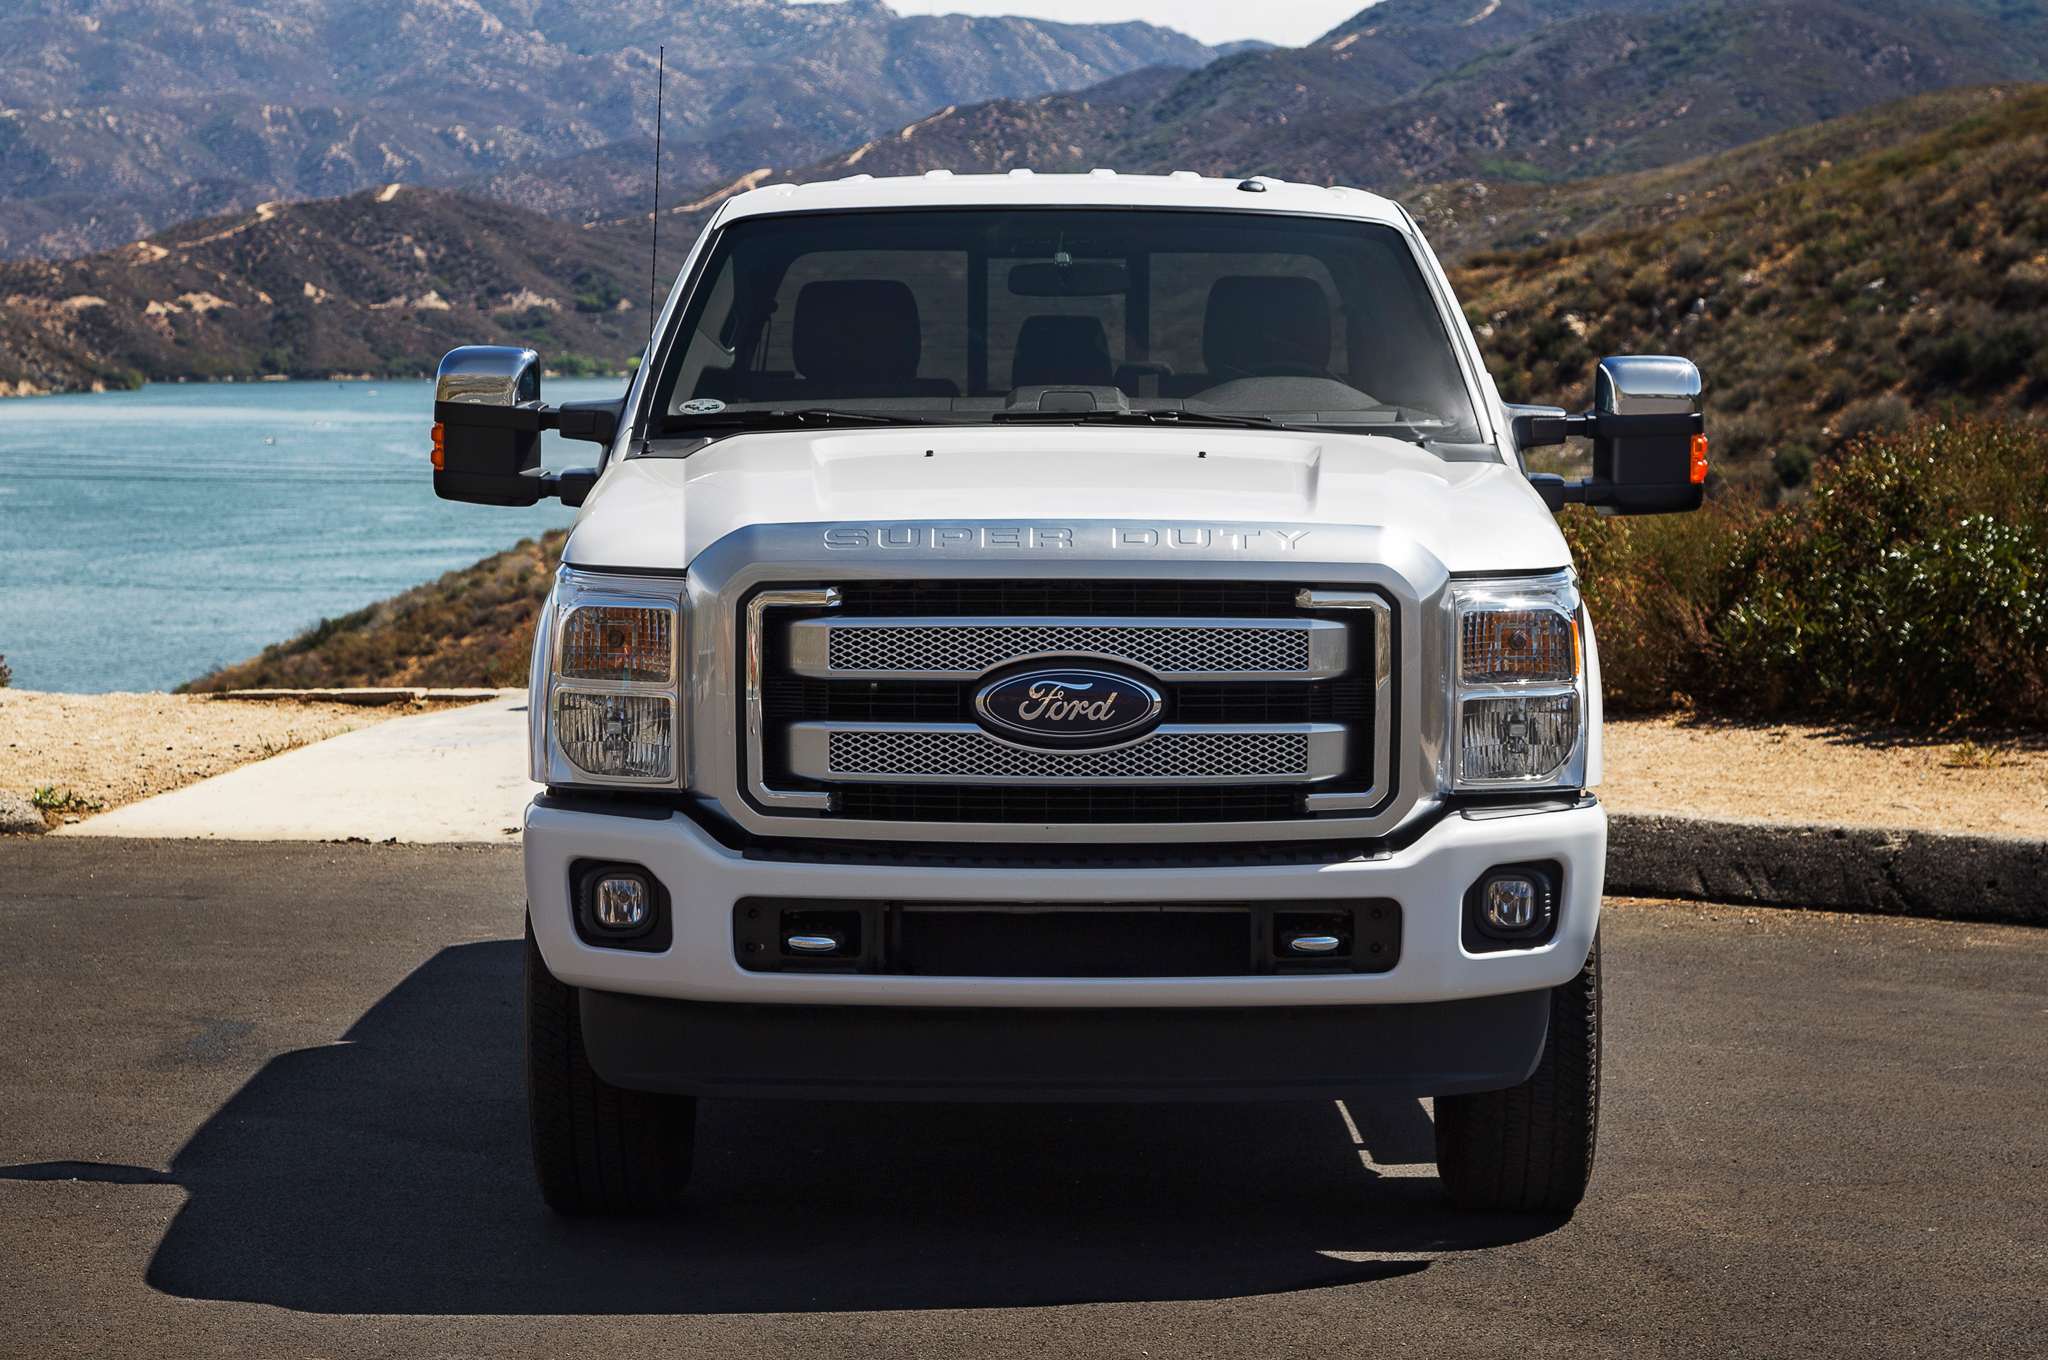 Ford f-350 2013 photo - 6